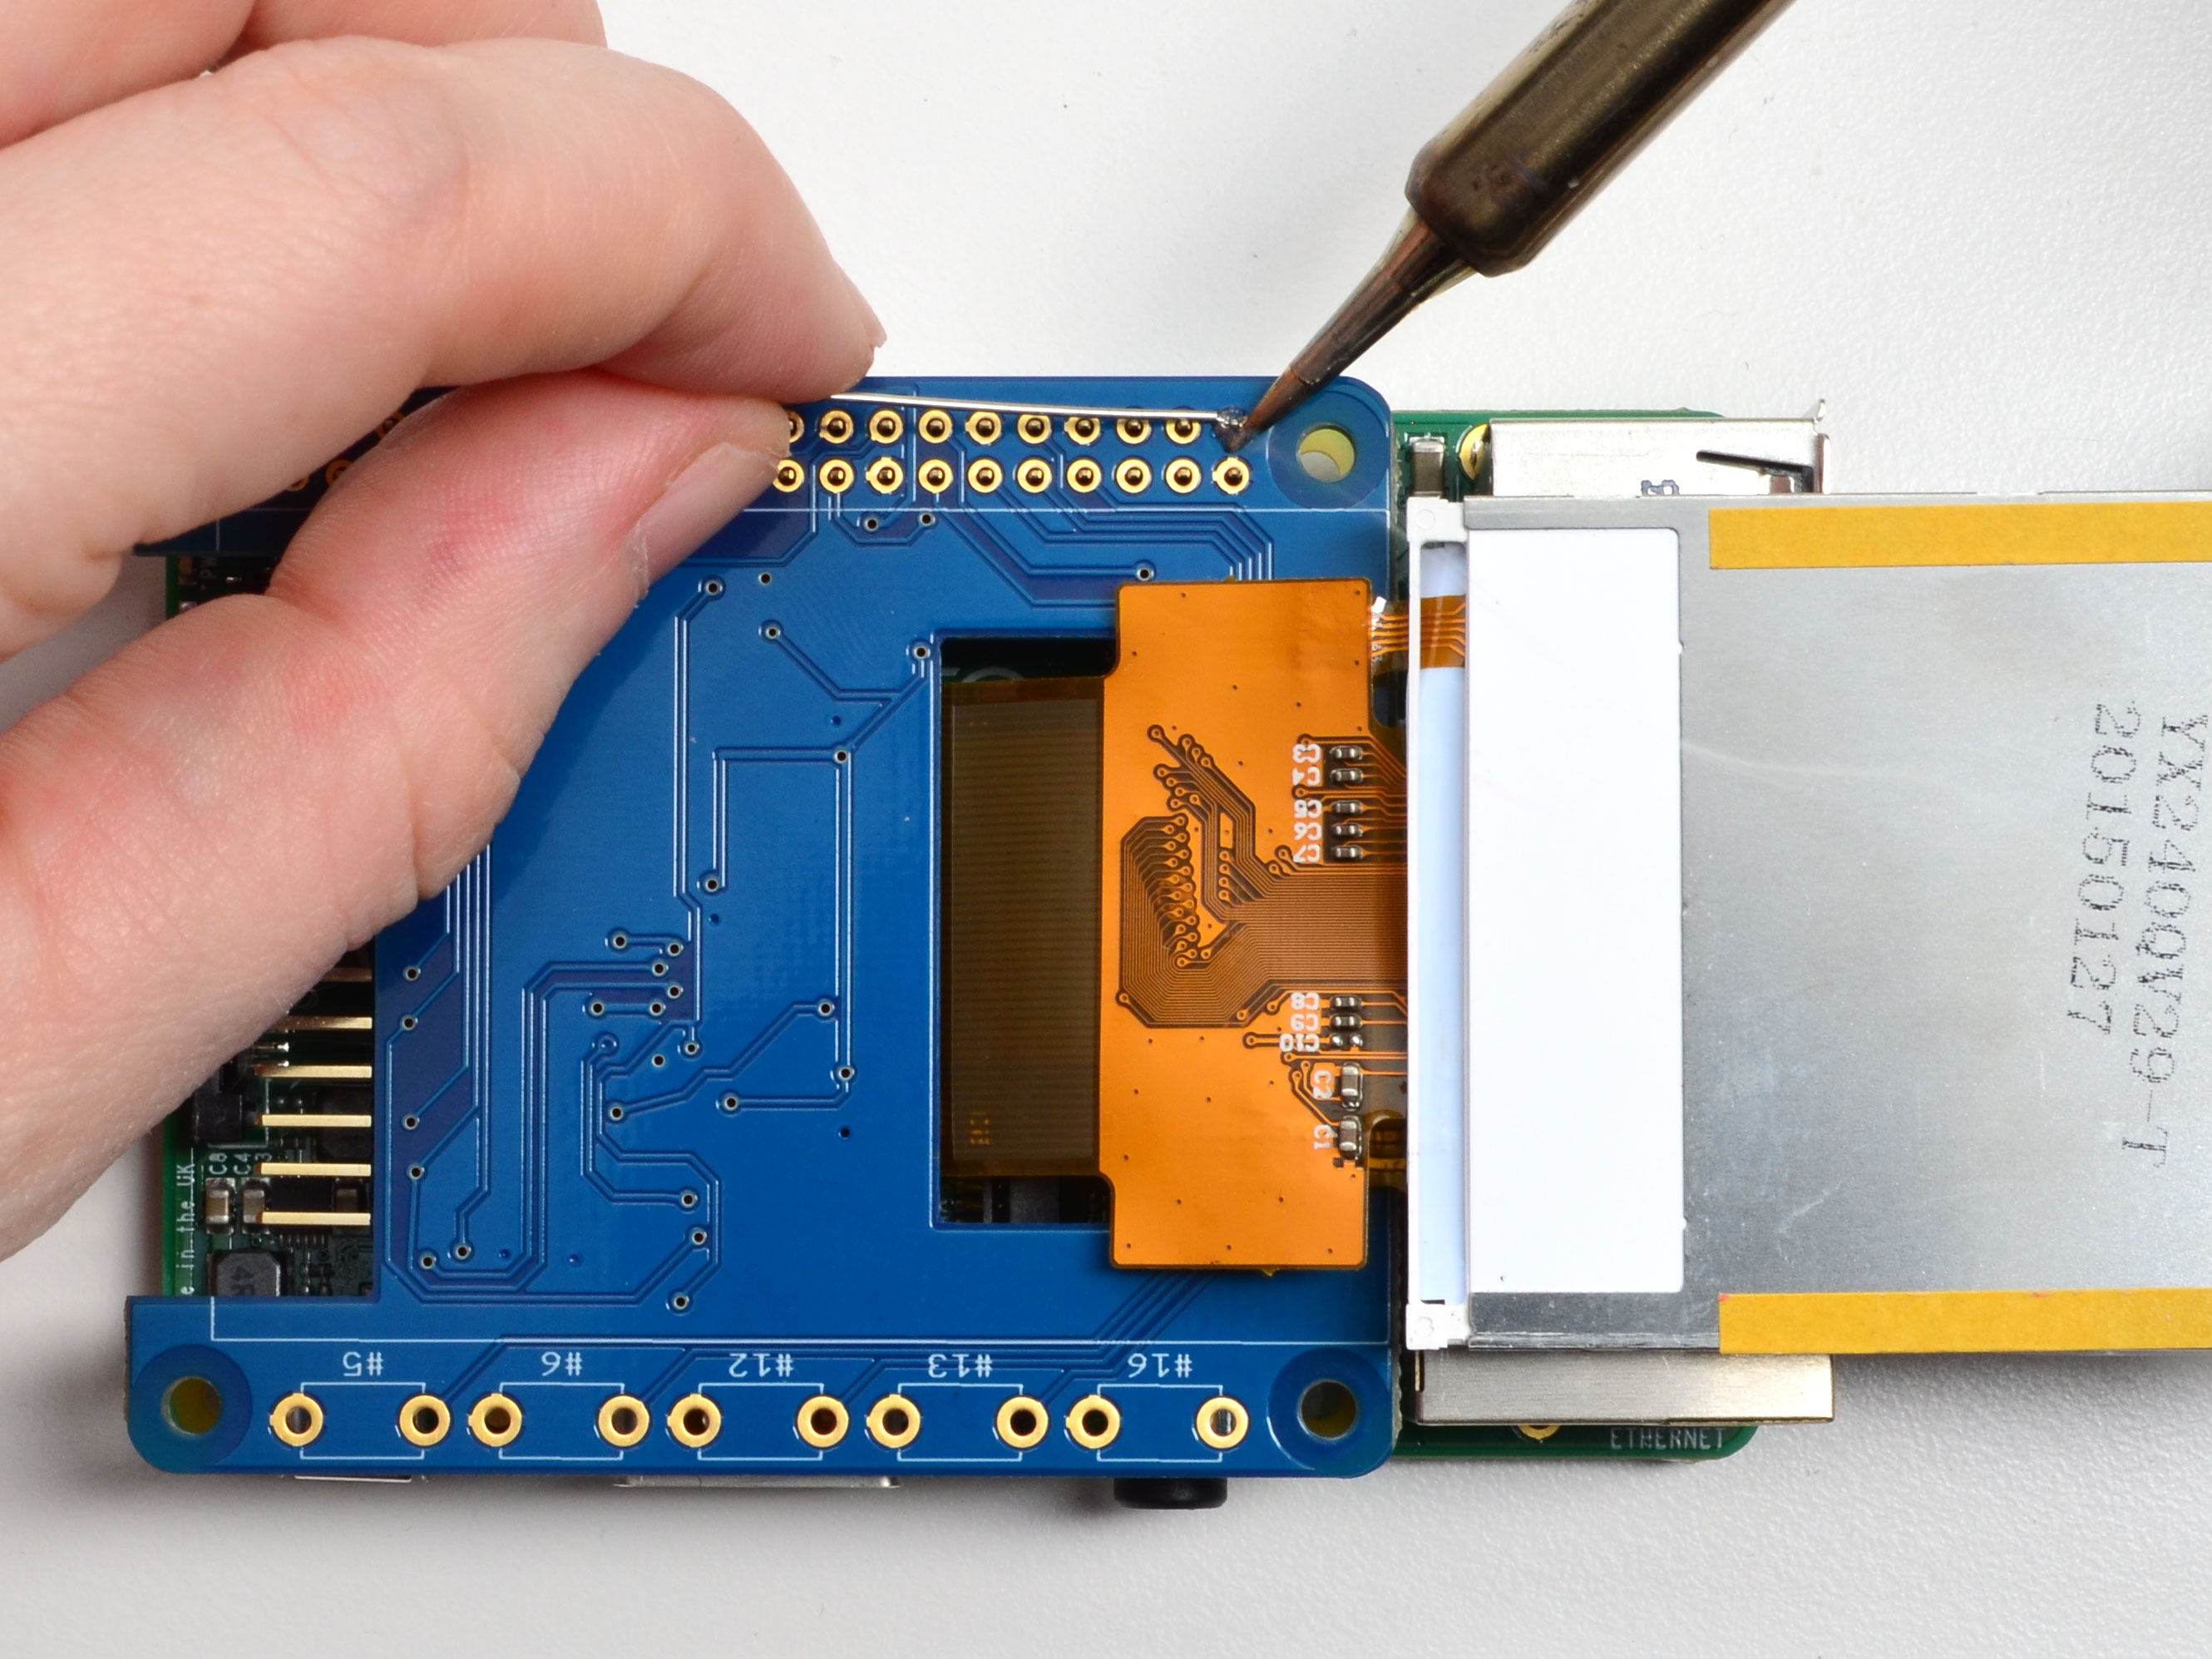 adafruit_products_tack2.jpg